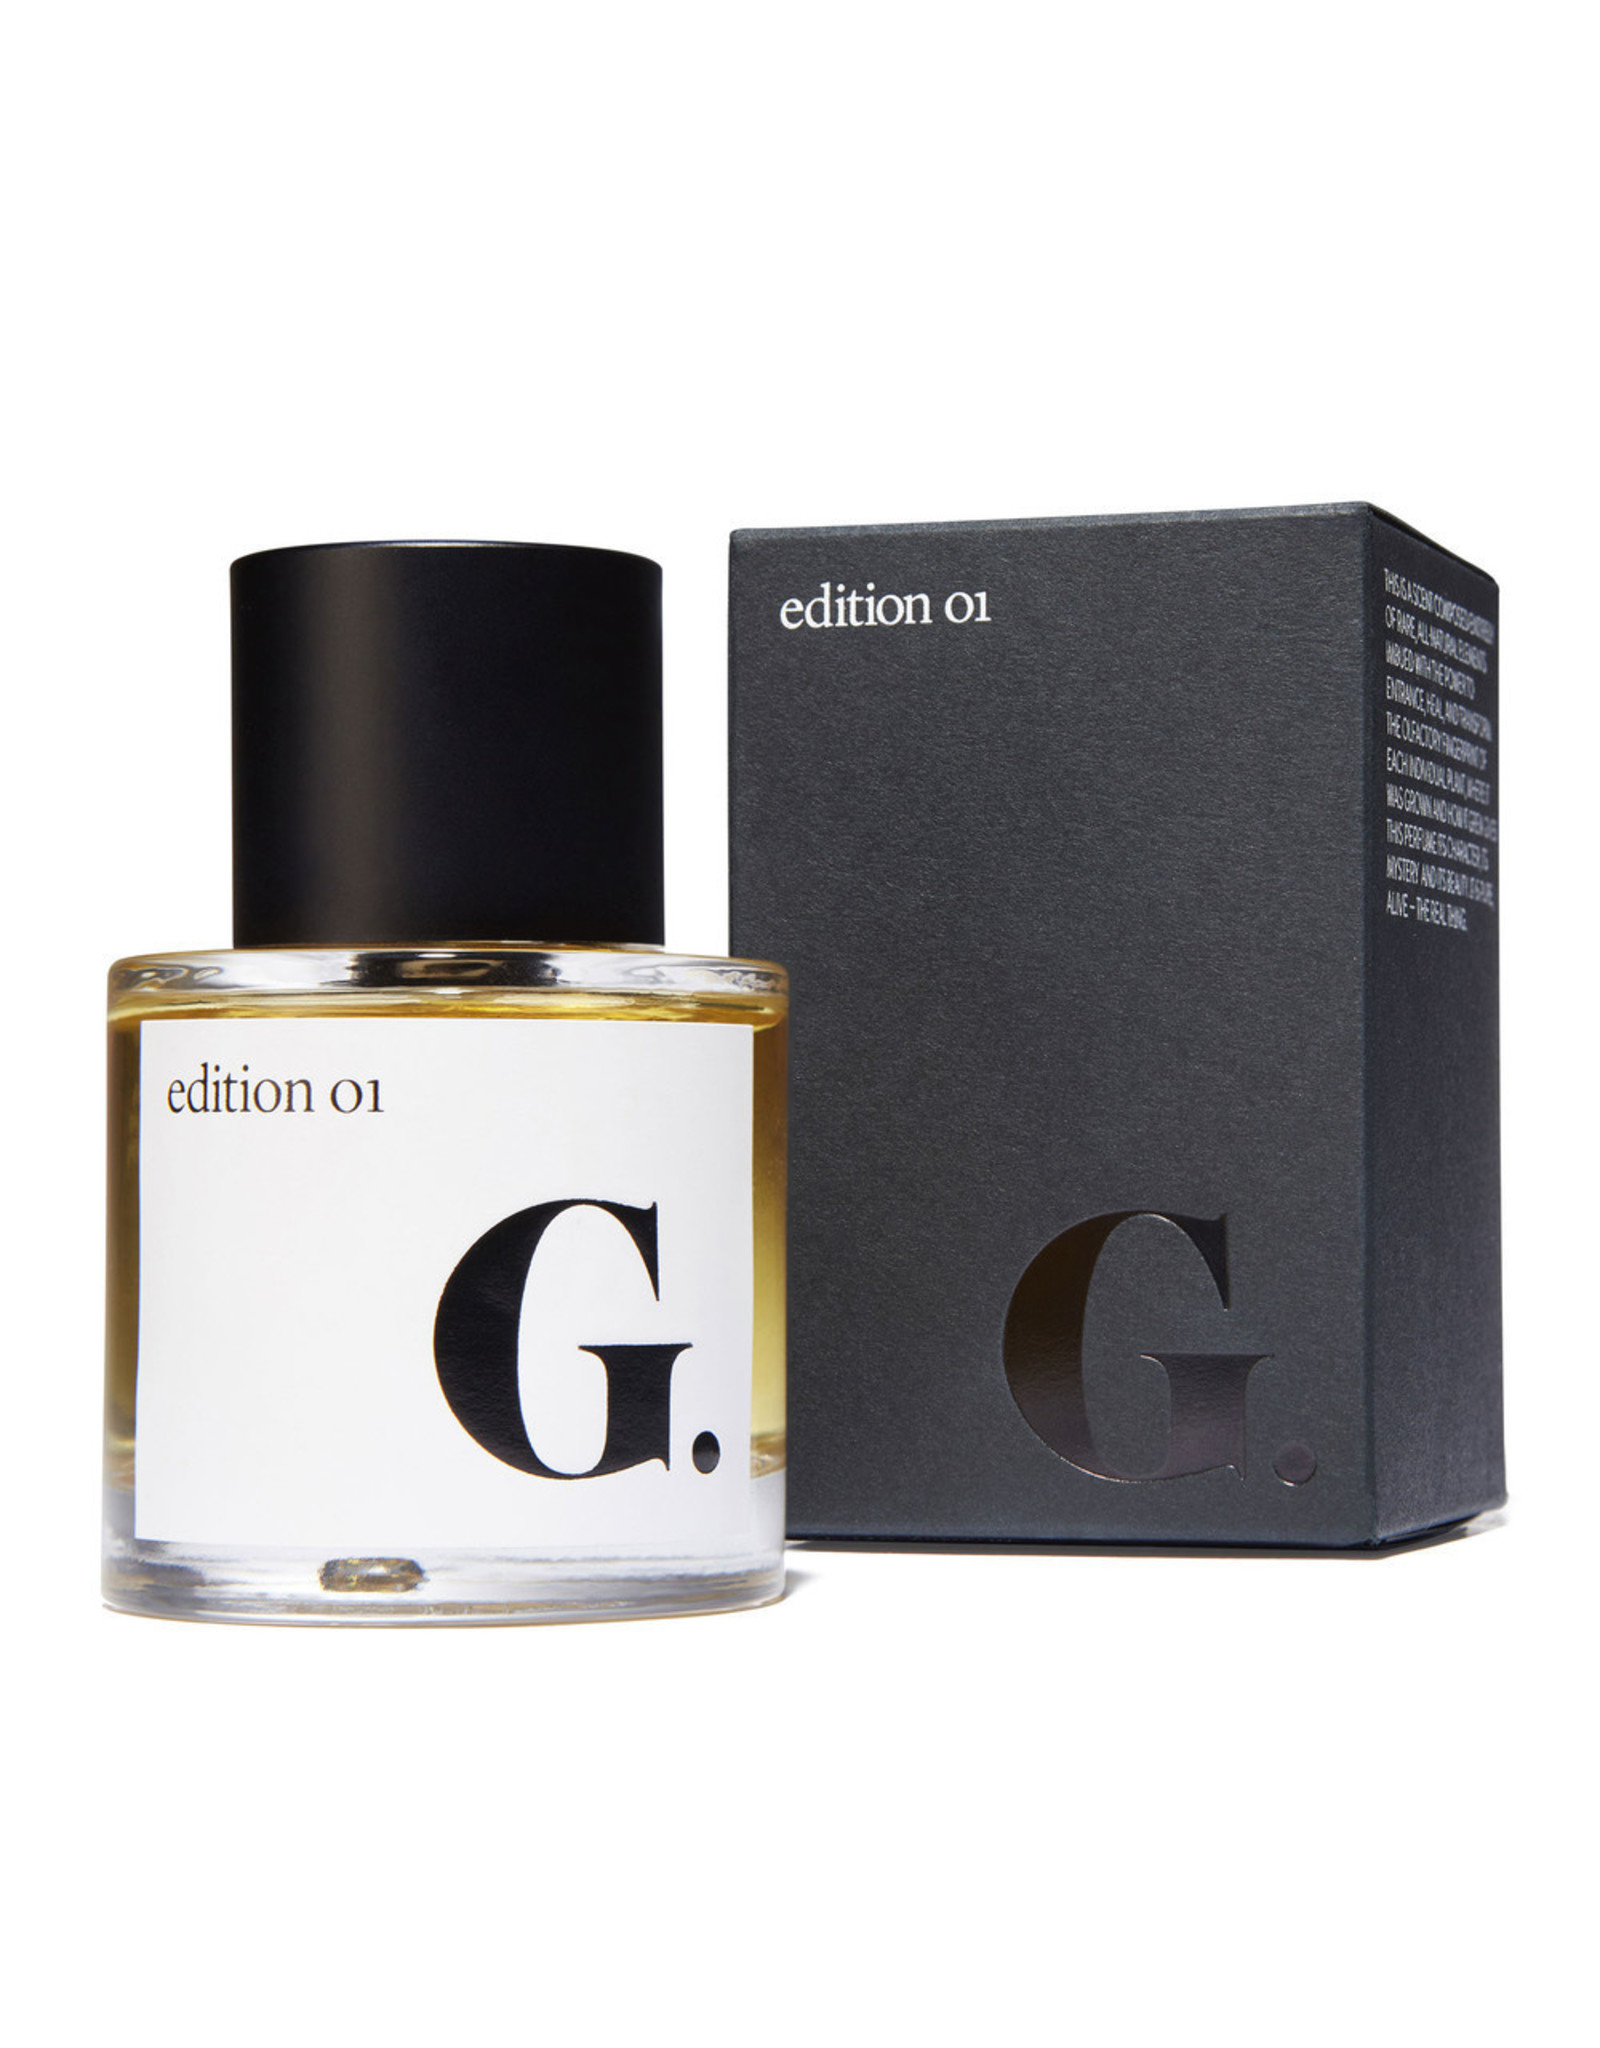 goop Fragrance goop Beauty Eau de Parfum: Edition 01 - Church - 1.7 fl oz